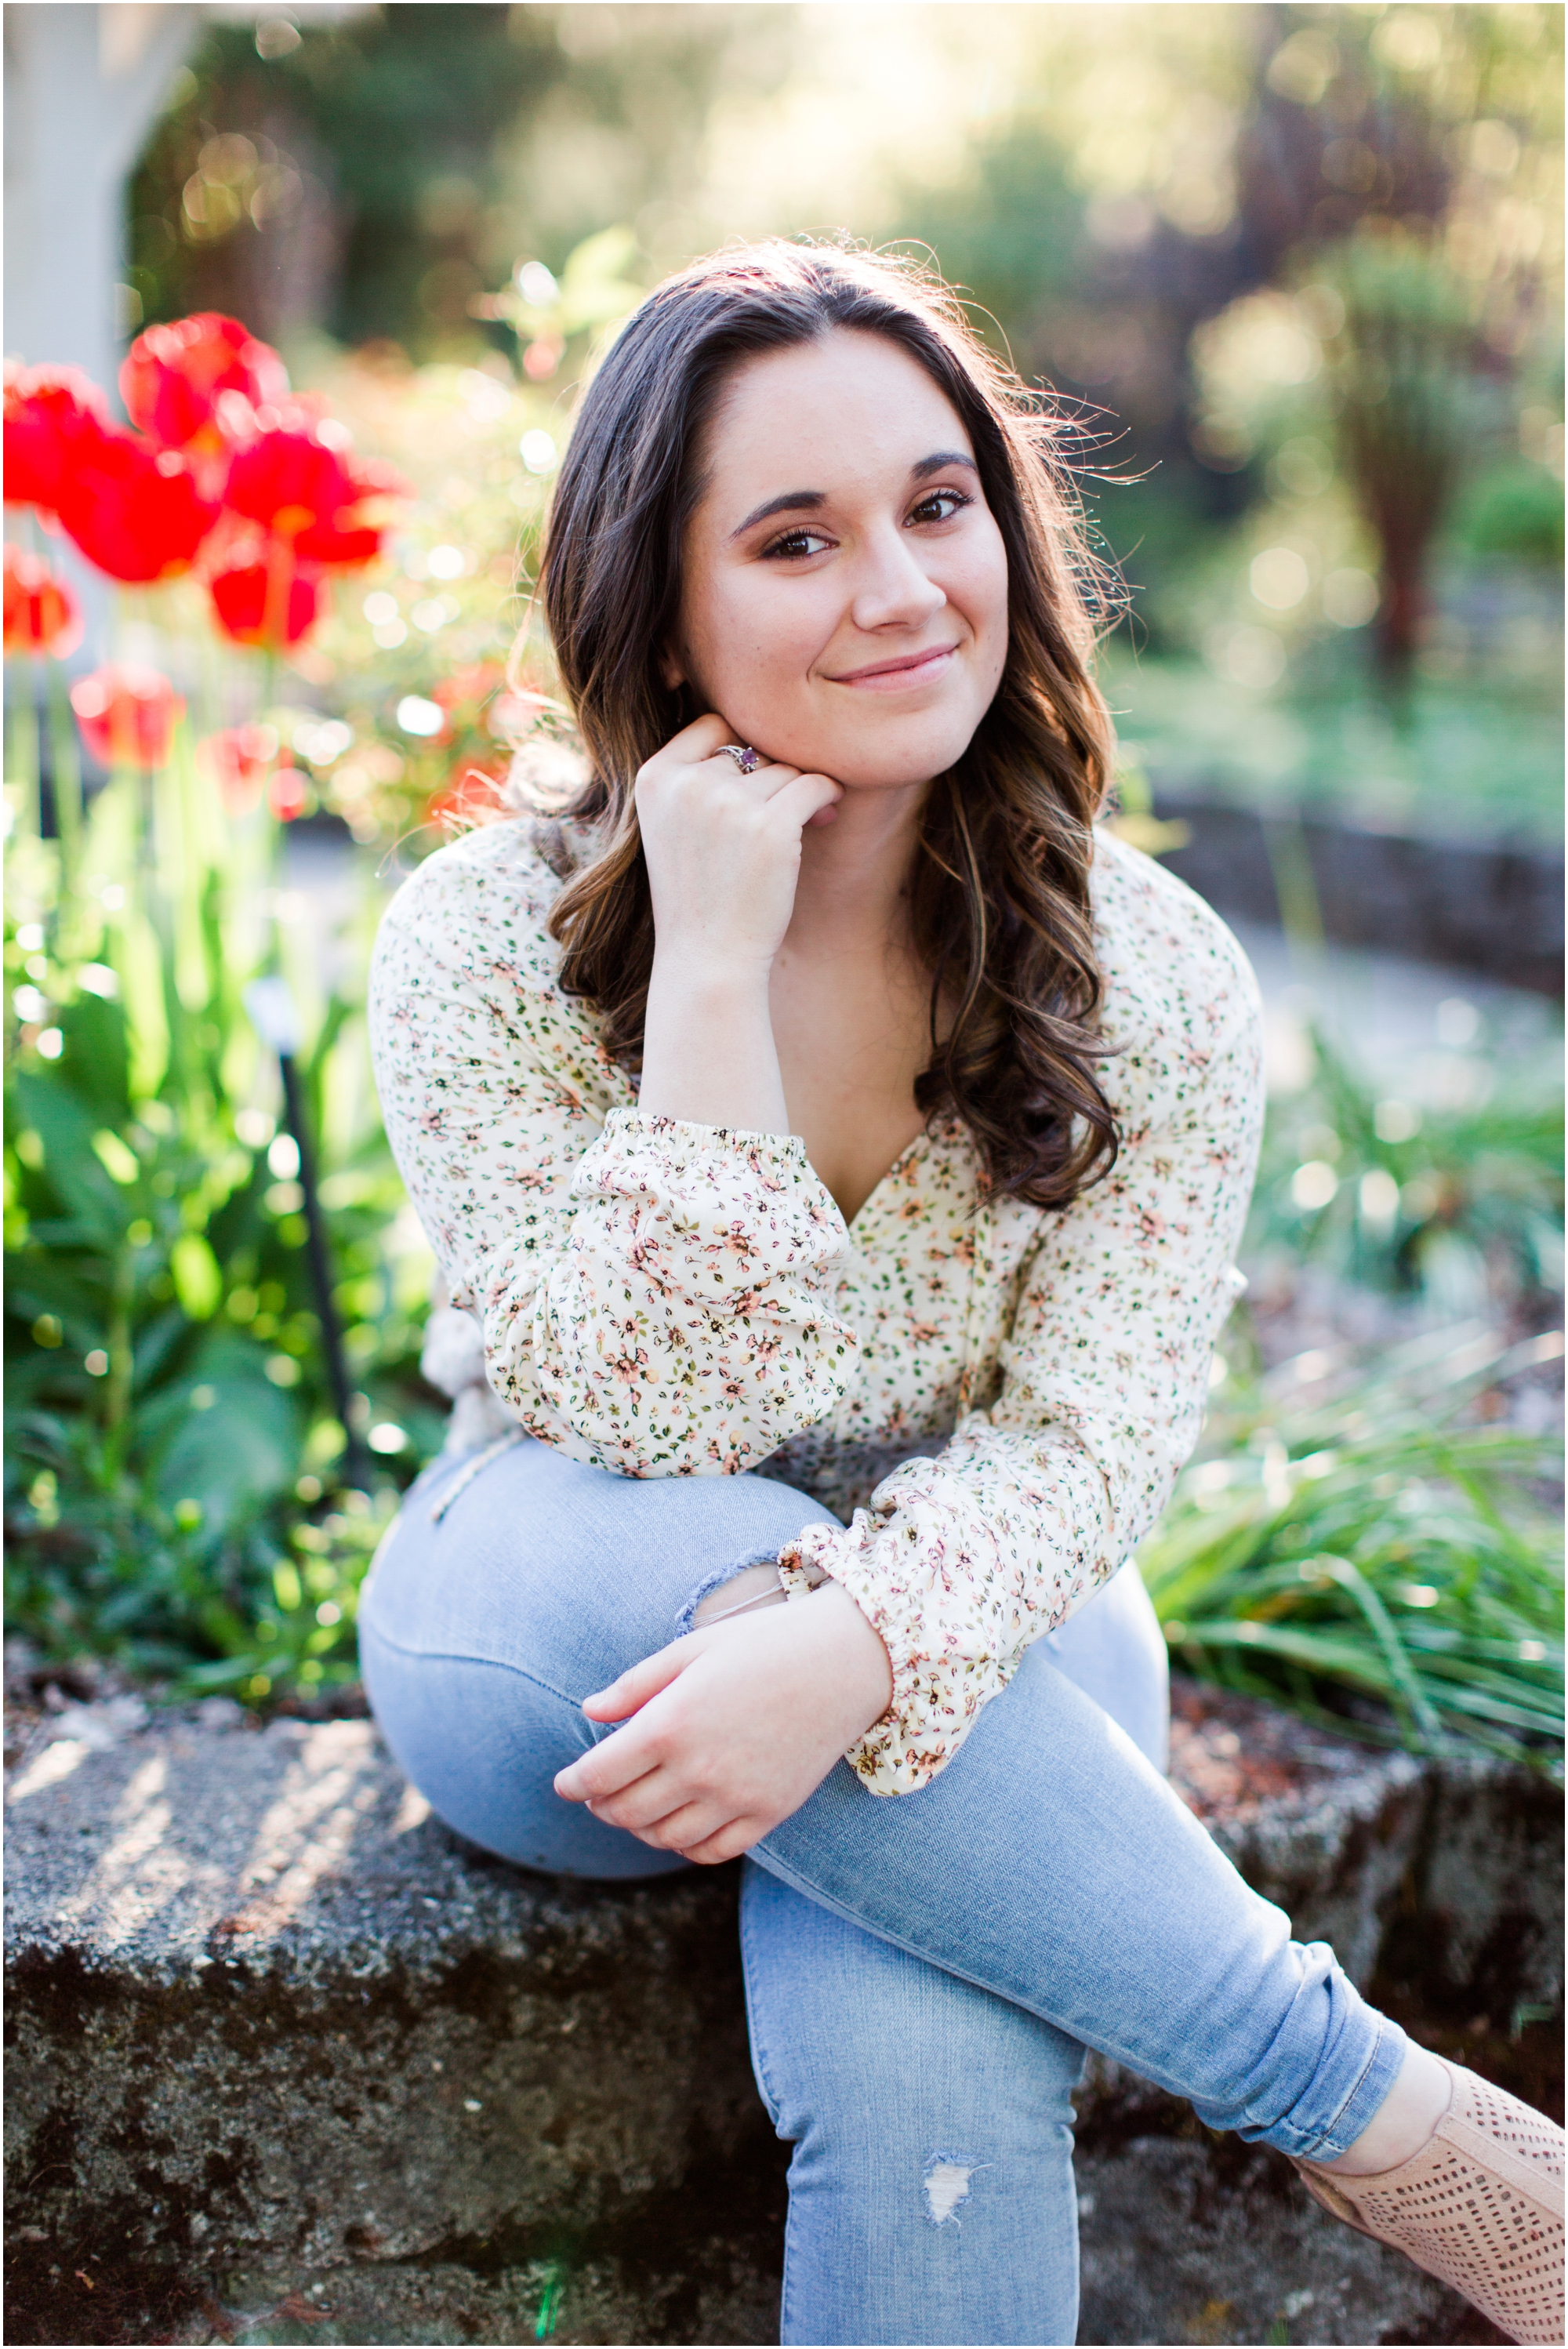 Senior Portraits at Point Defiance Park in Tacoma.  Photos by Briana Calderon Photography based in the greater Seattle Tacoma Area._1126.jpg